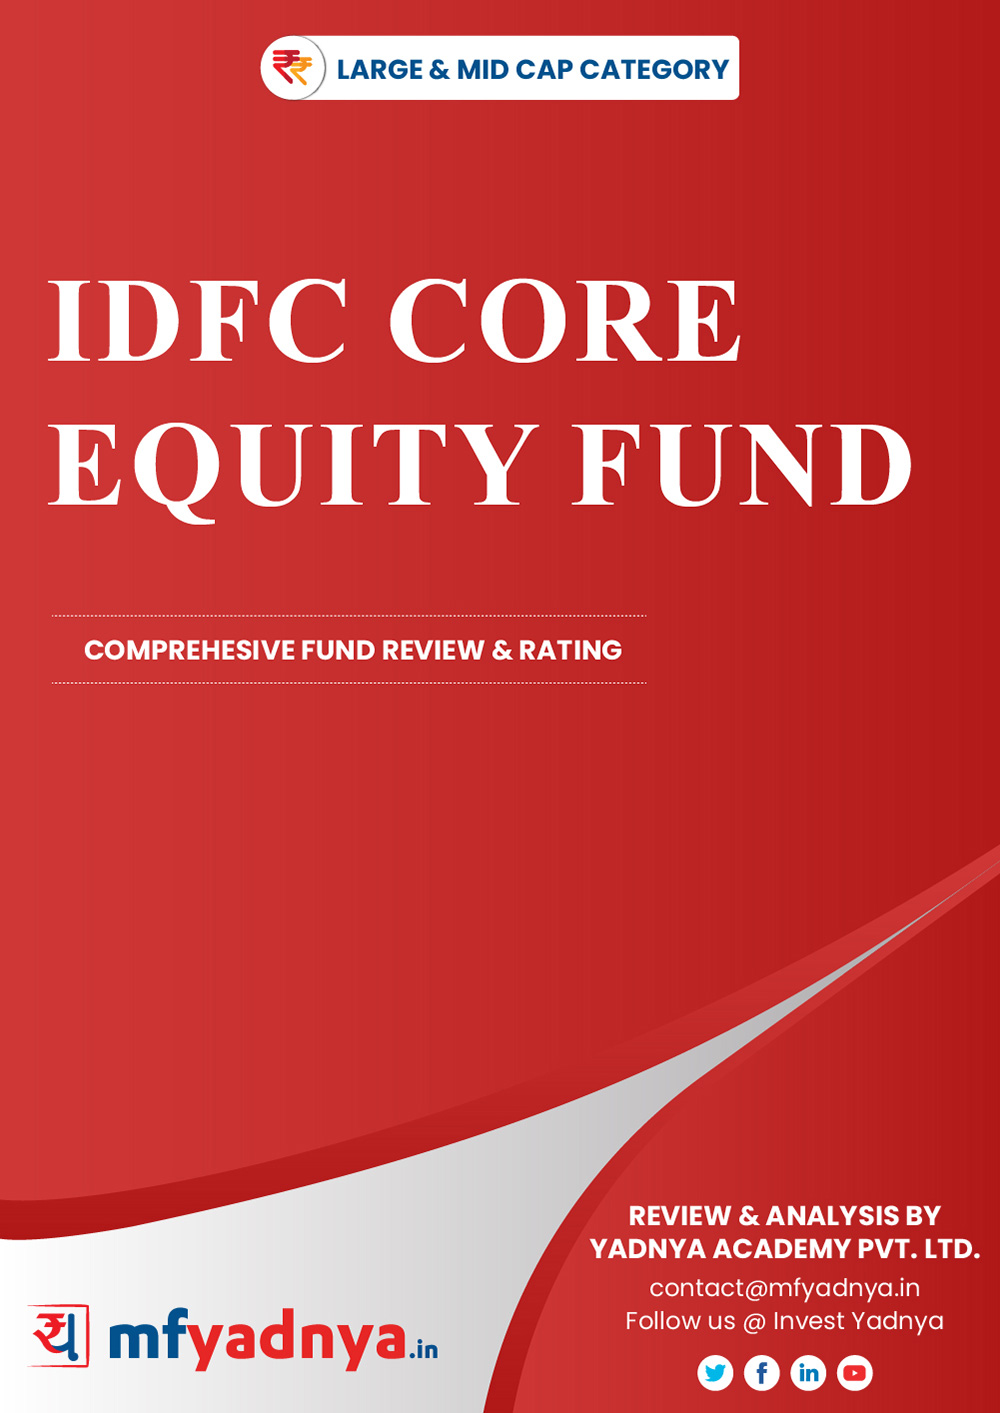 Large & Midcap Category Review - 'IDFC Core Equity Fund'. Most Comprehensive and detailed MF review based on Yadnya's proprietary methodology of Green, Yellow & Red Star. Detailed Analysis & Review based on Nov 30th, 2019 data.